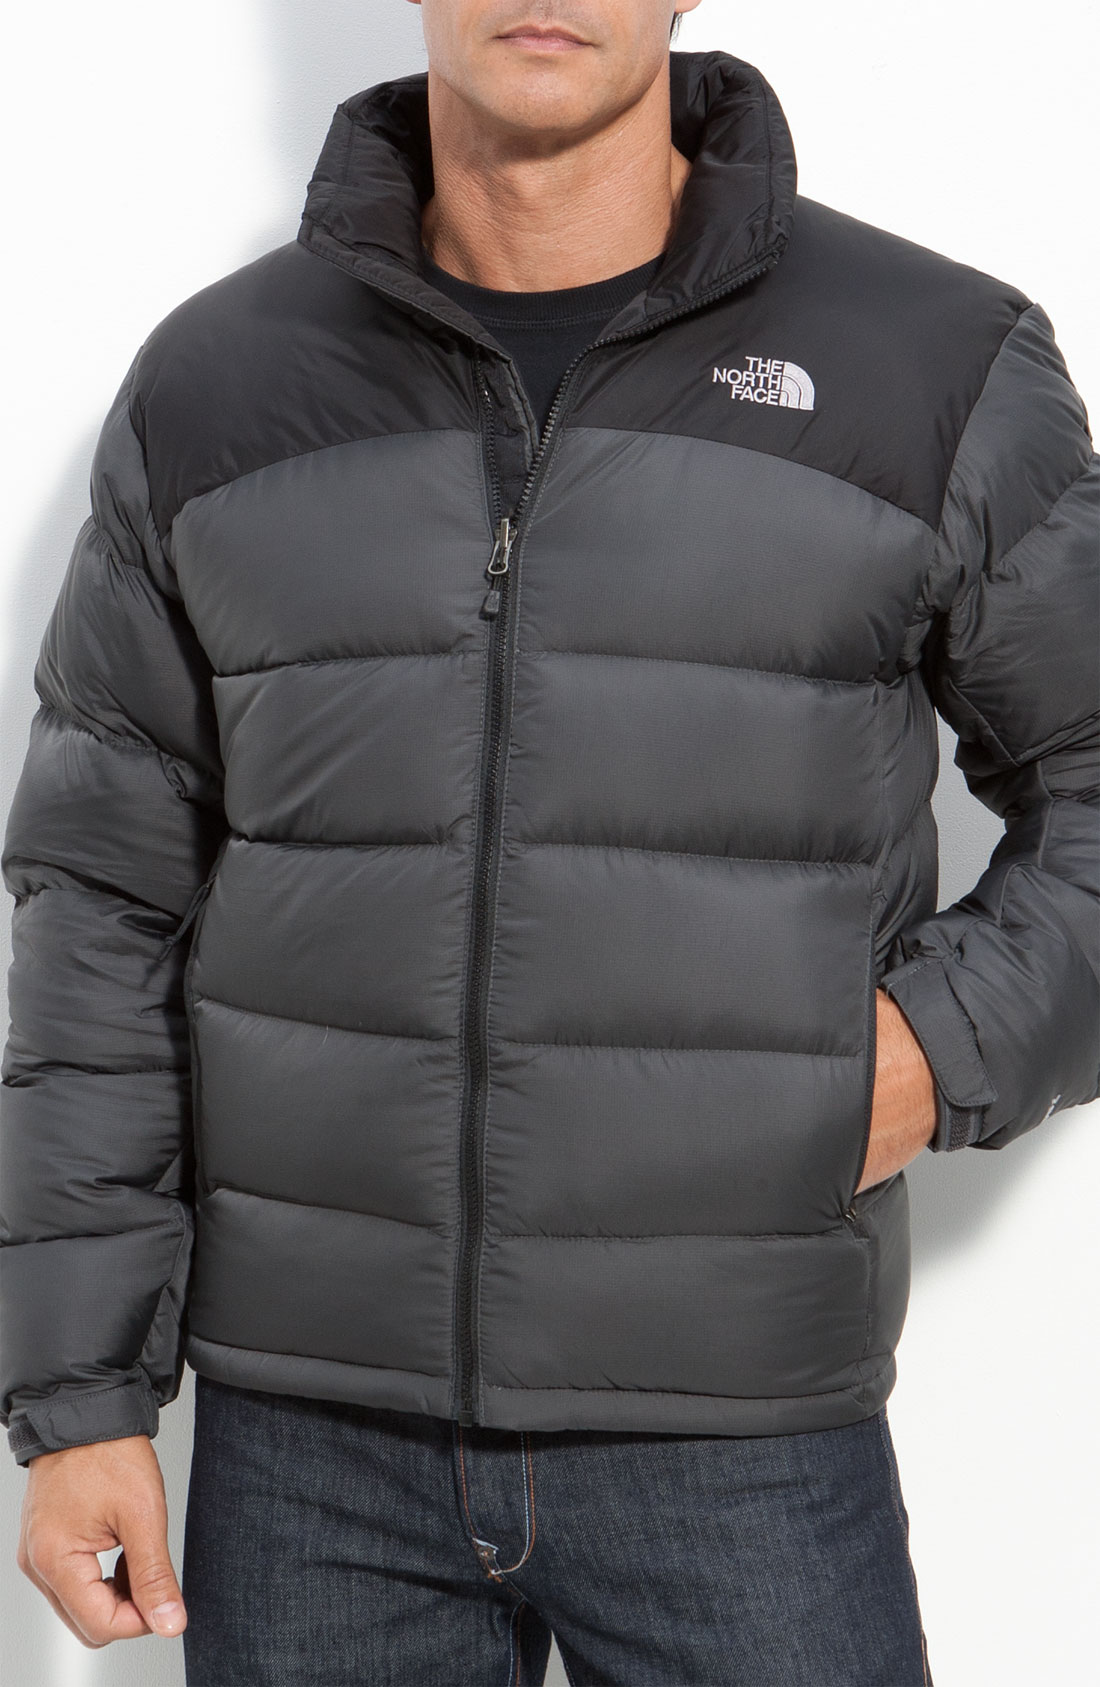 the north face nuptse 2 down jacket in gray for men. Black Bedroom Furniture Sets. Home Design Ideas